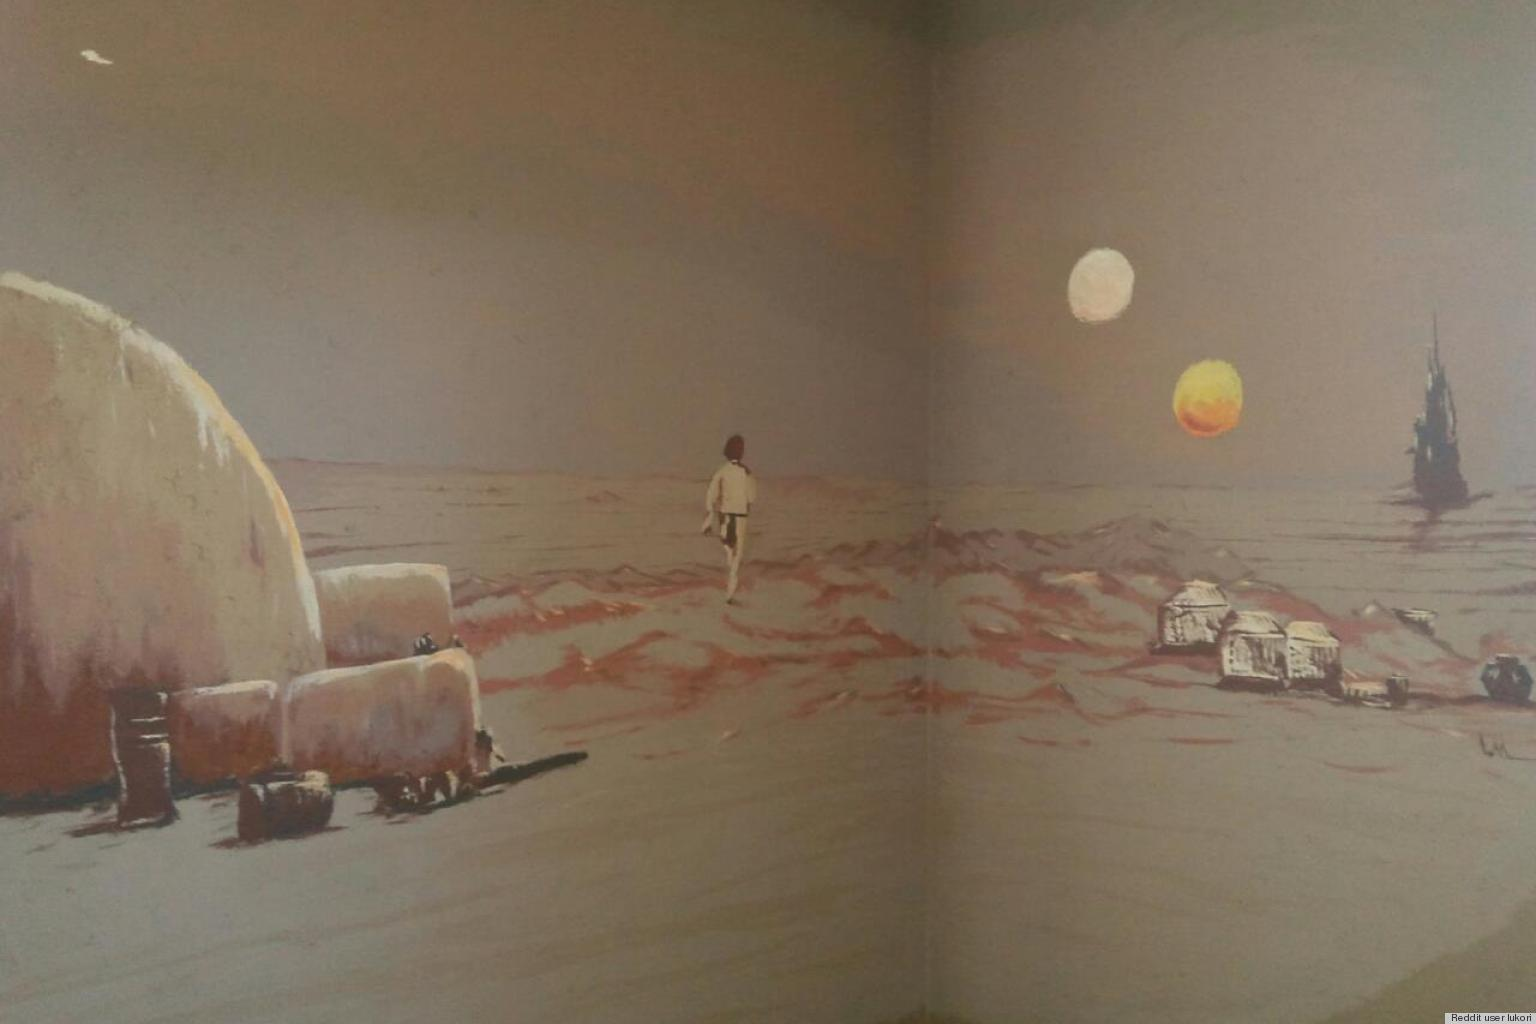 A Star Wars Bedroom Mural Fit For A Superfan, As Seen On Reddit (PHOTO) |  HuffPost